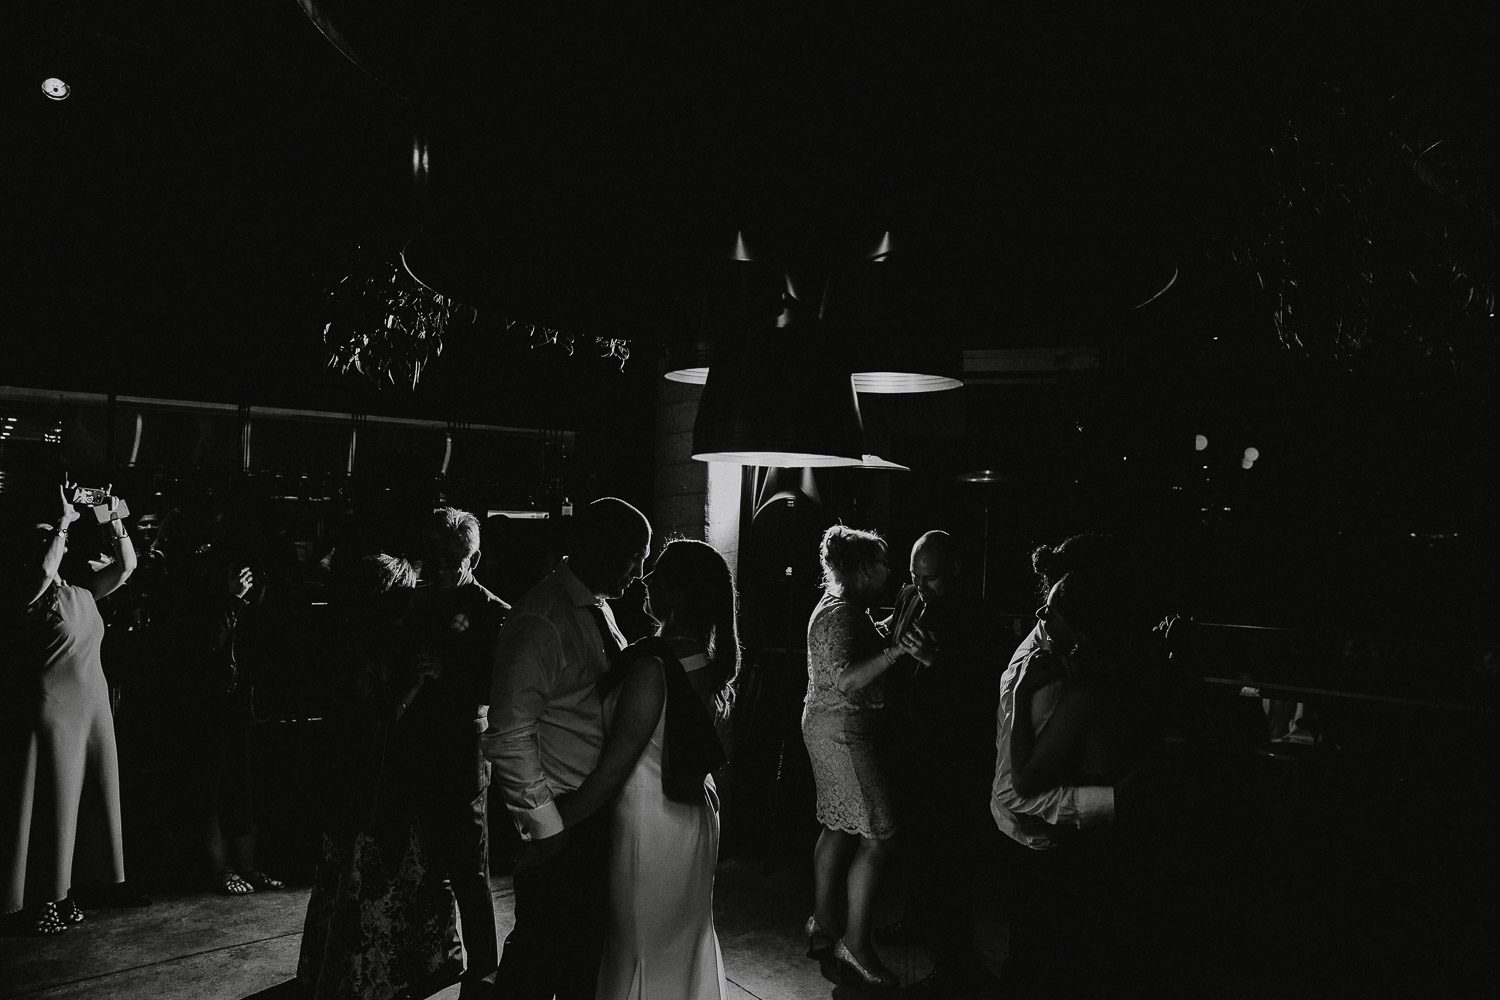 Creative wedding dancefloor photography